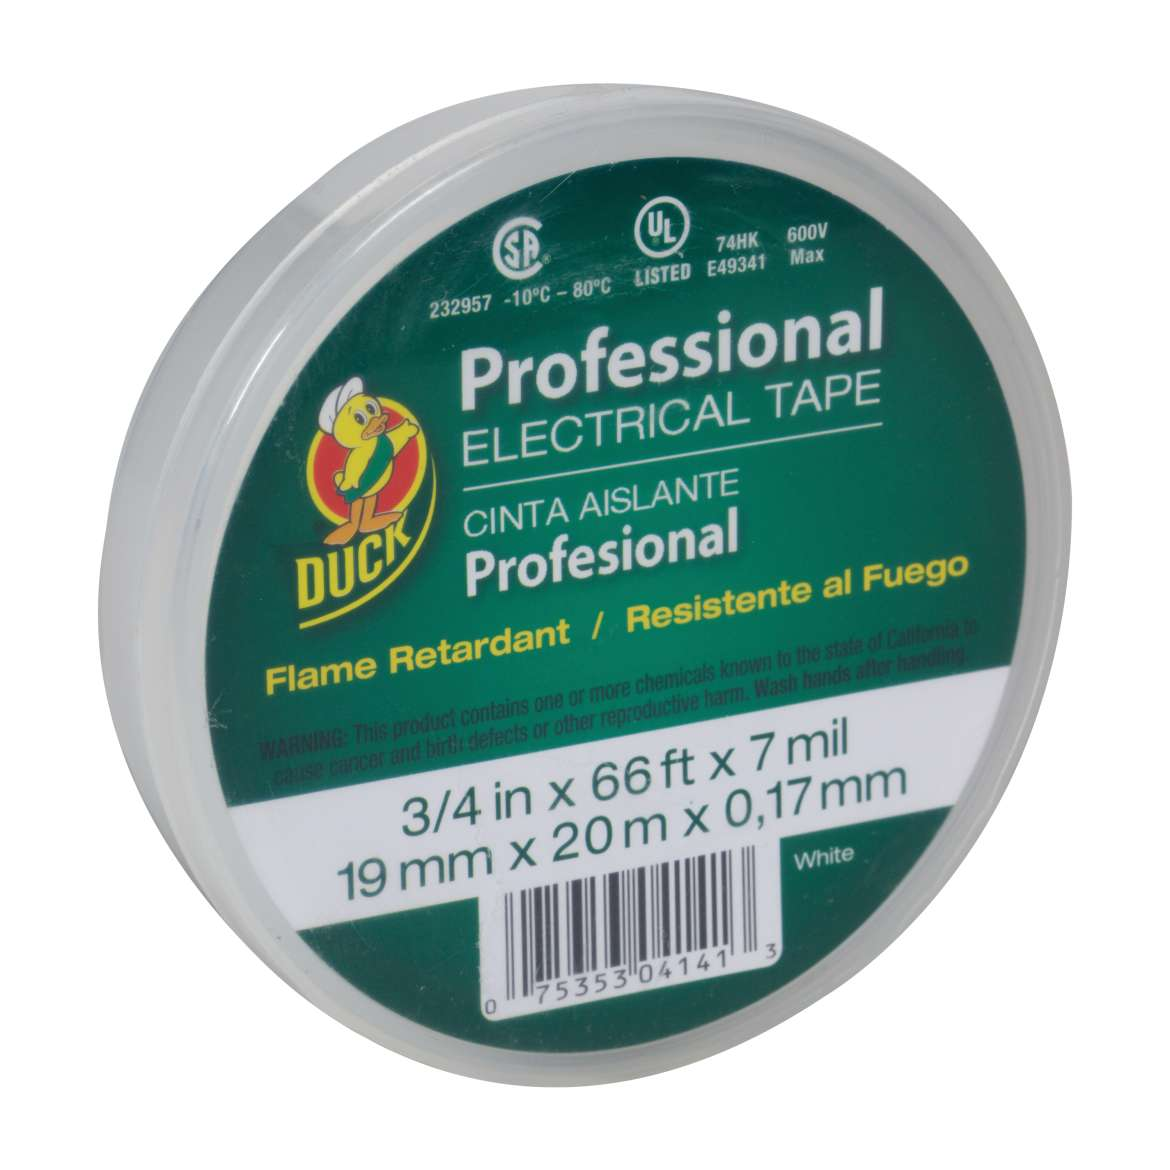 Duck® Brand Professional Electrical Tape Canister Pack - White, .75 in. x 66 ft. x 7 mil. Image